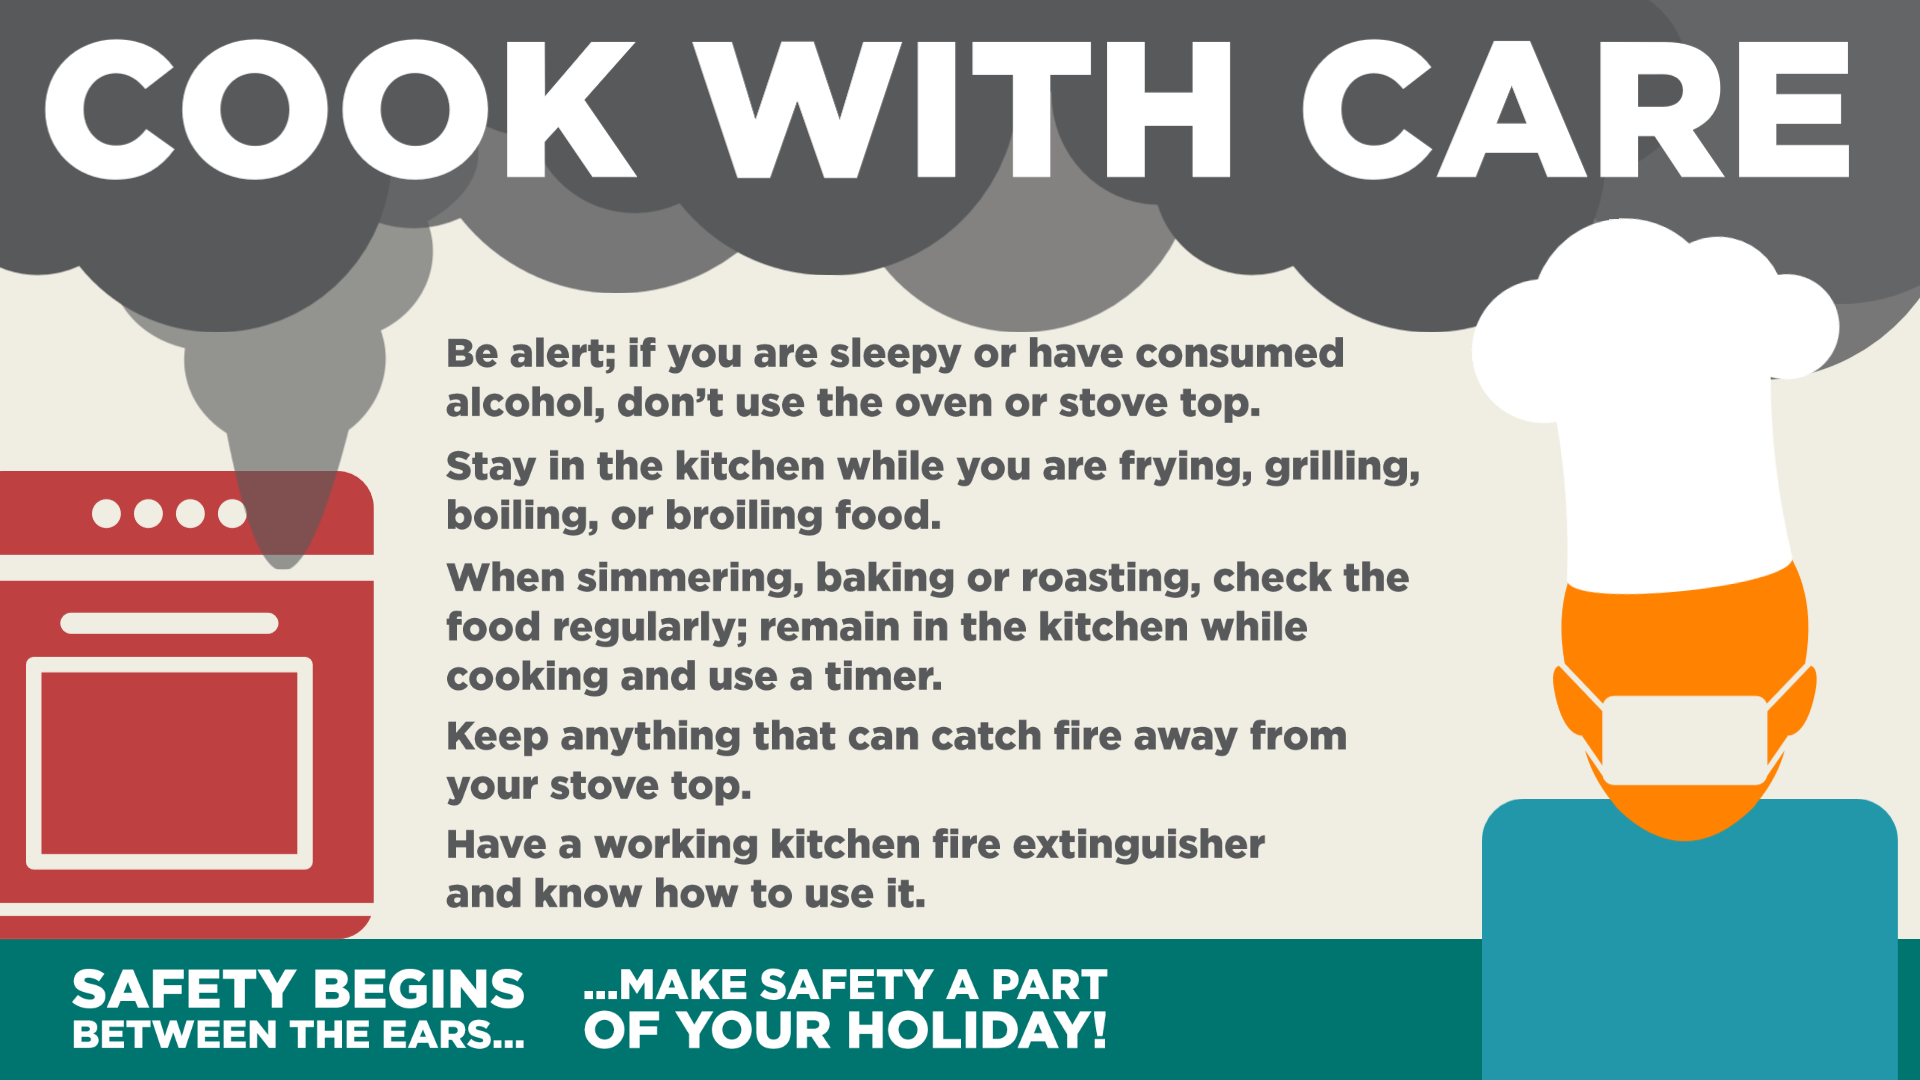 A graphic that lists safety considerations for Holiday Cooking Safety